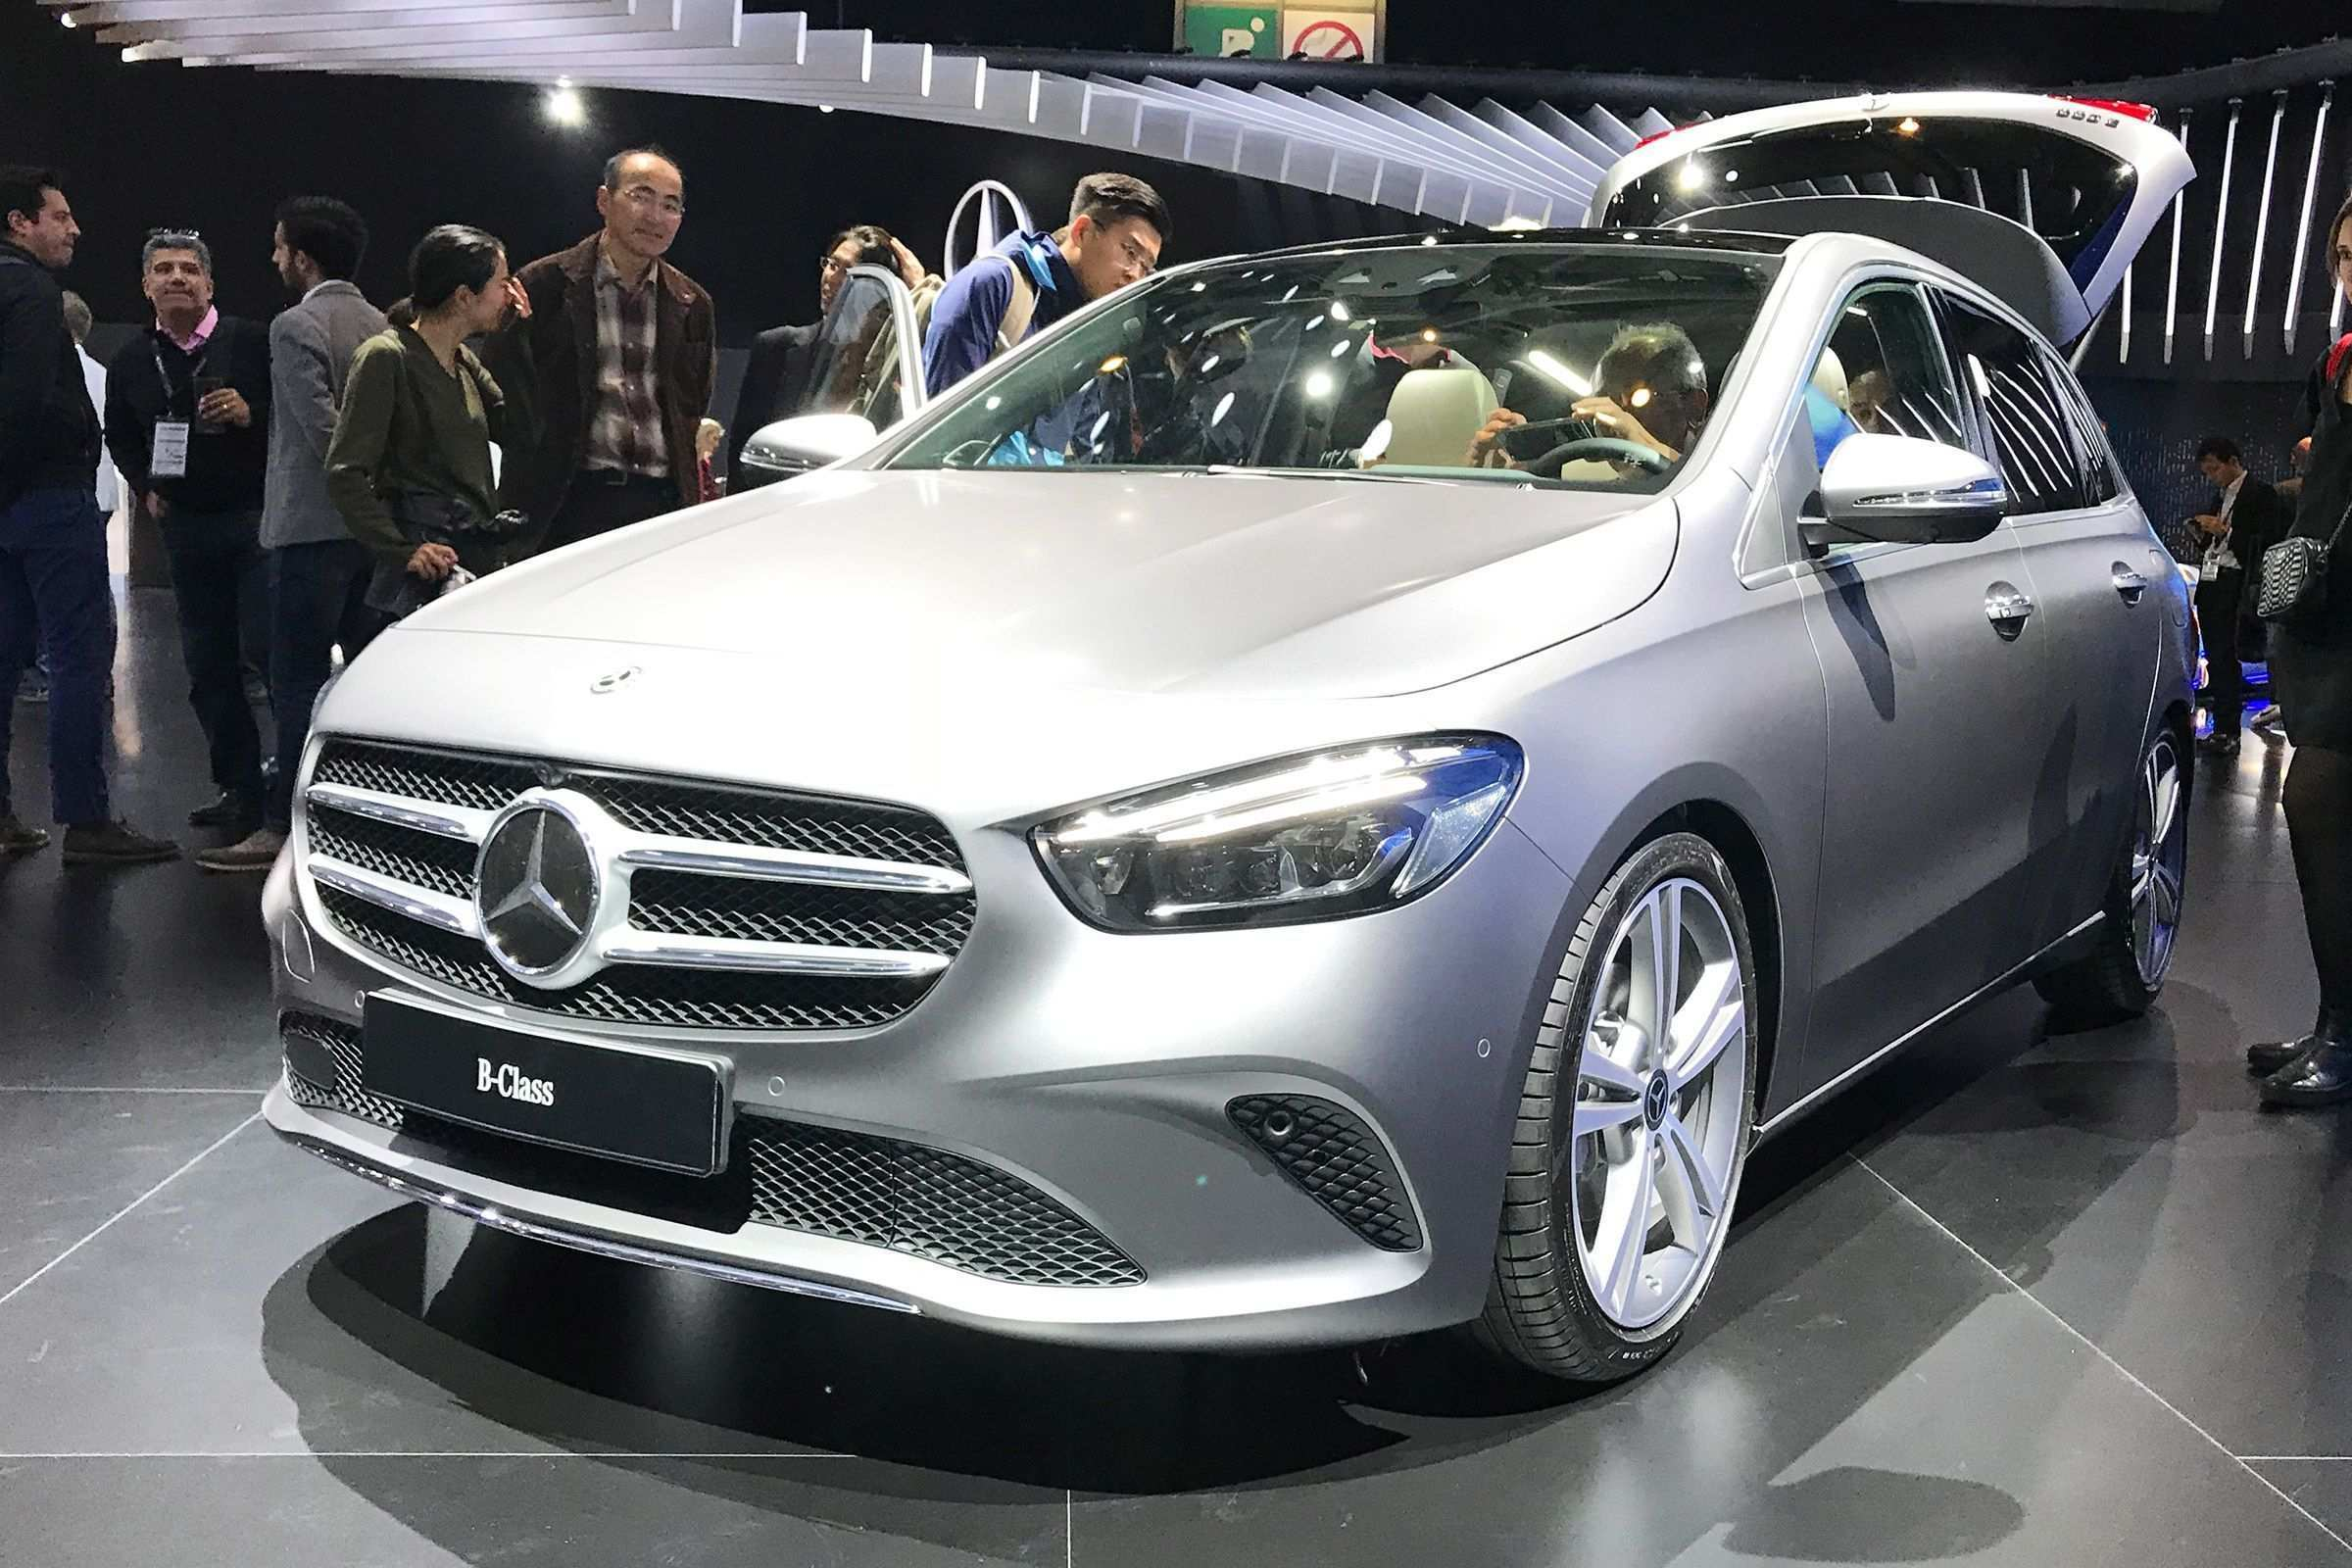 72 Great Mercedes A Class 2020 New Concept Specs for Mercedes A Class 2020 New Concept